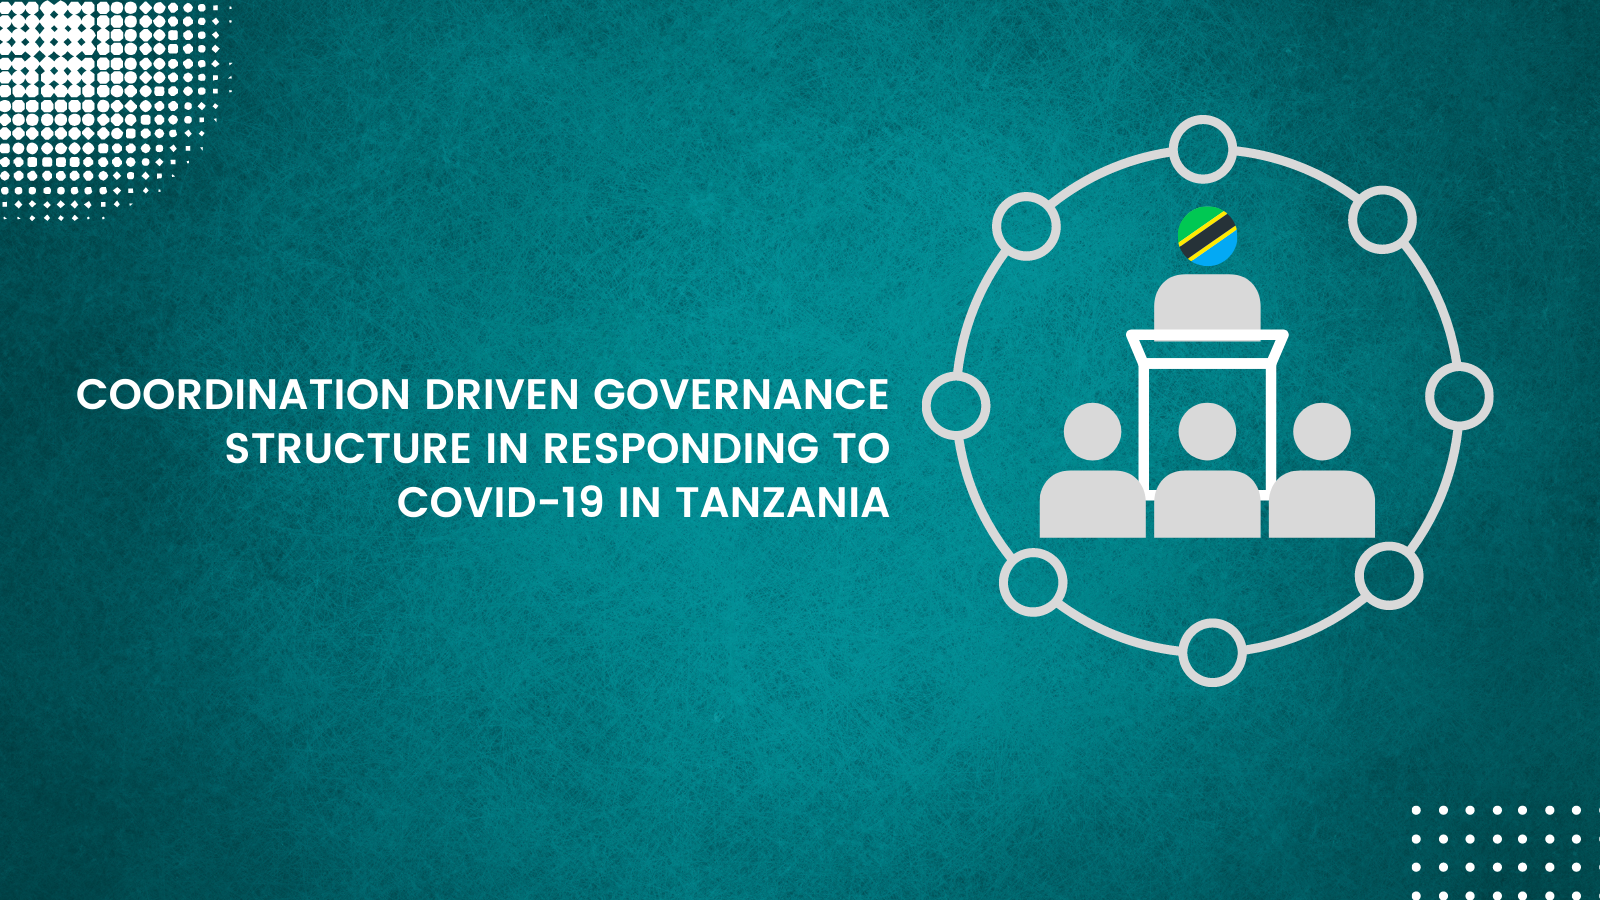 Coordination Driven Governance Structure in Responding to COVID-19 in Tanzania